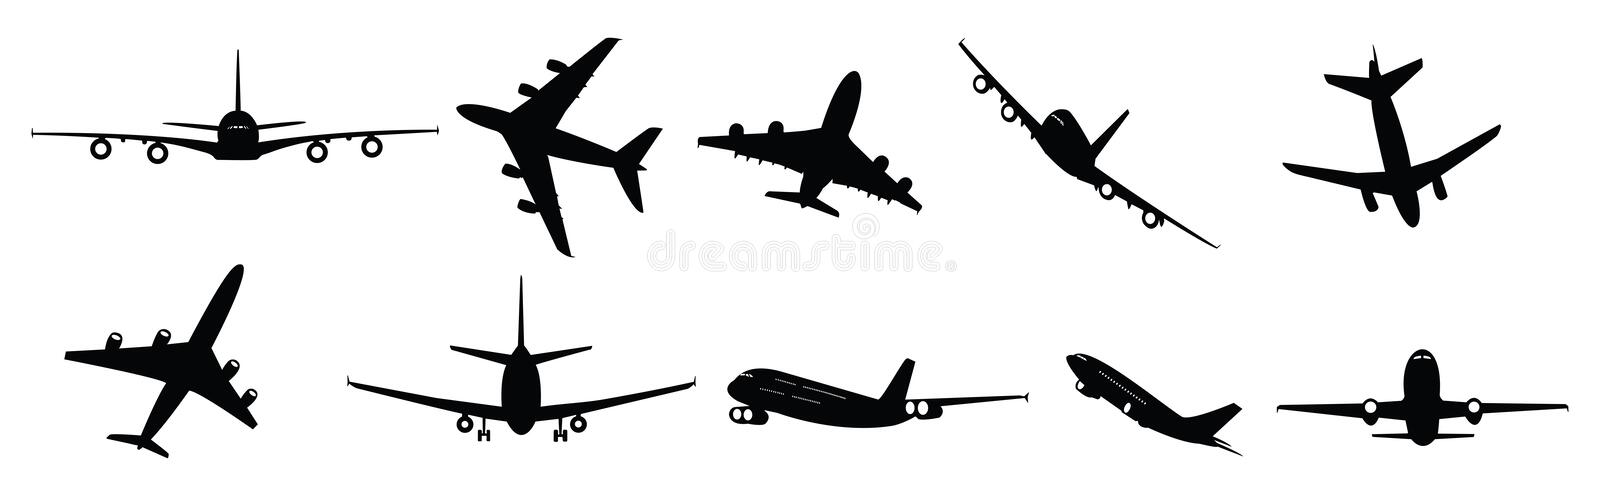 Download Passenger Jets Royalty Free Stock Photos - Image: 18528798